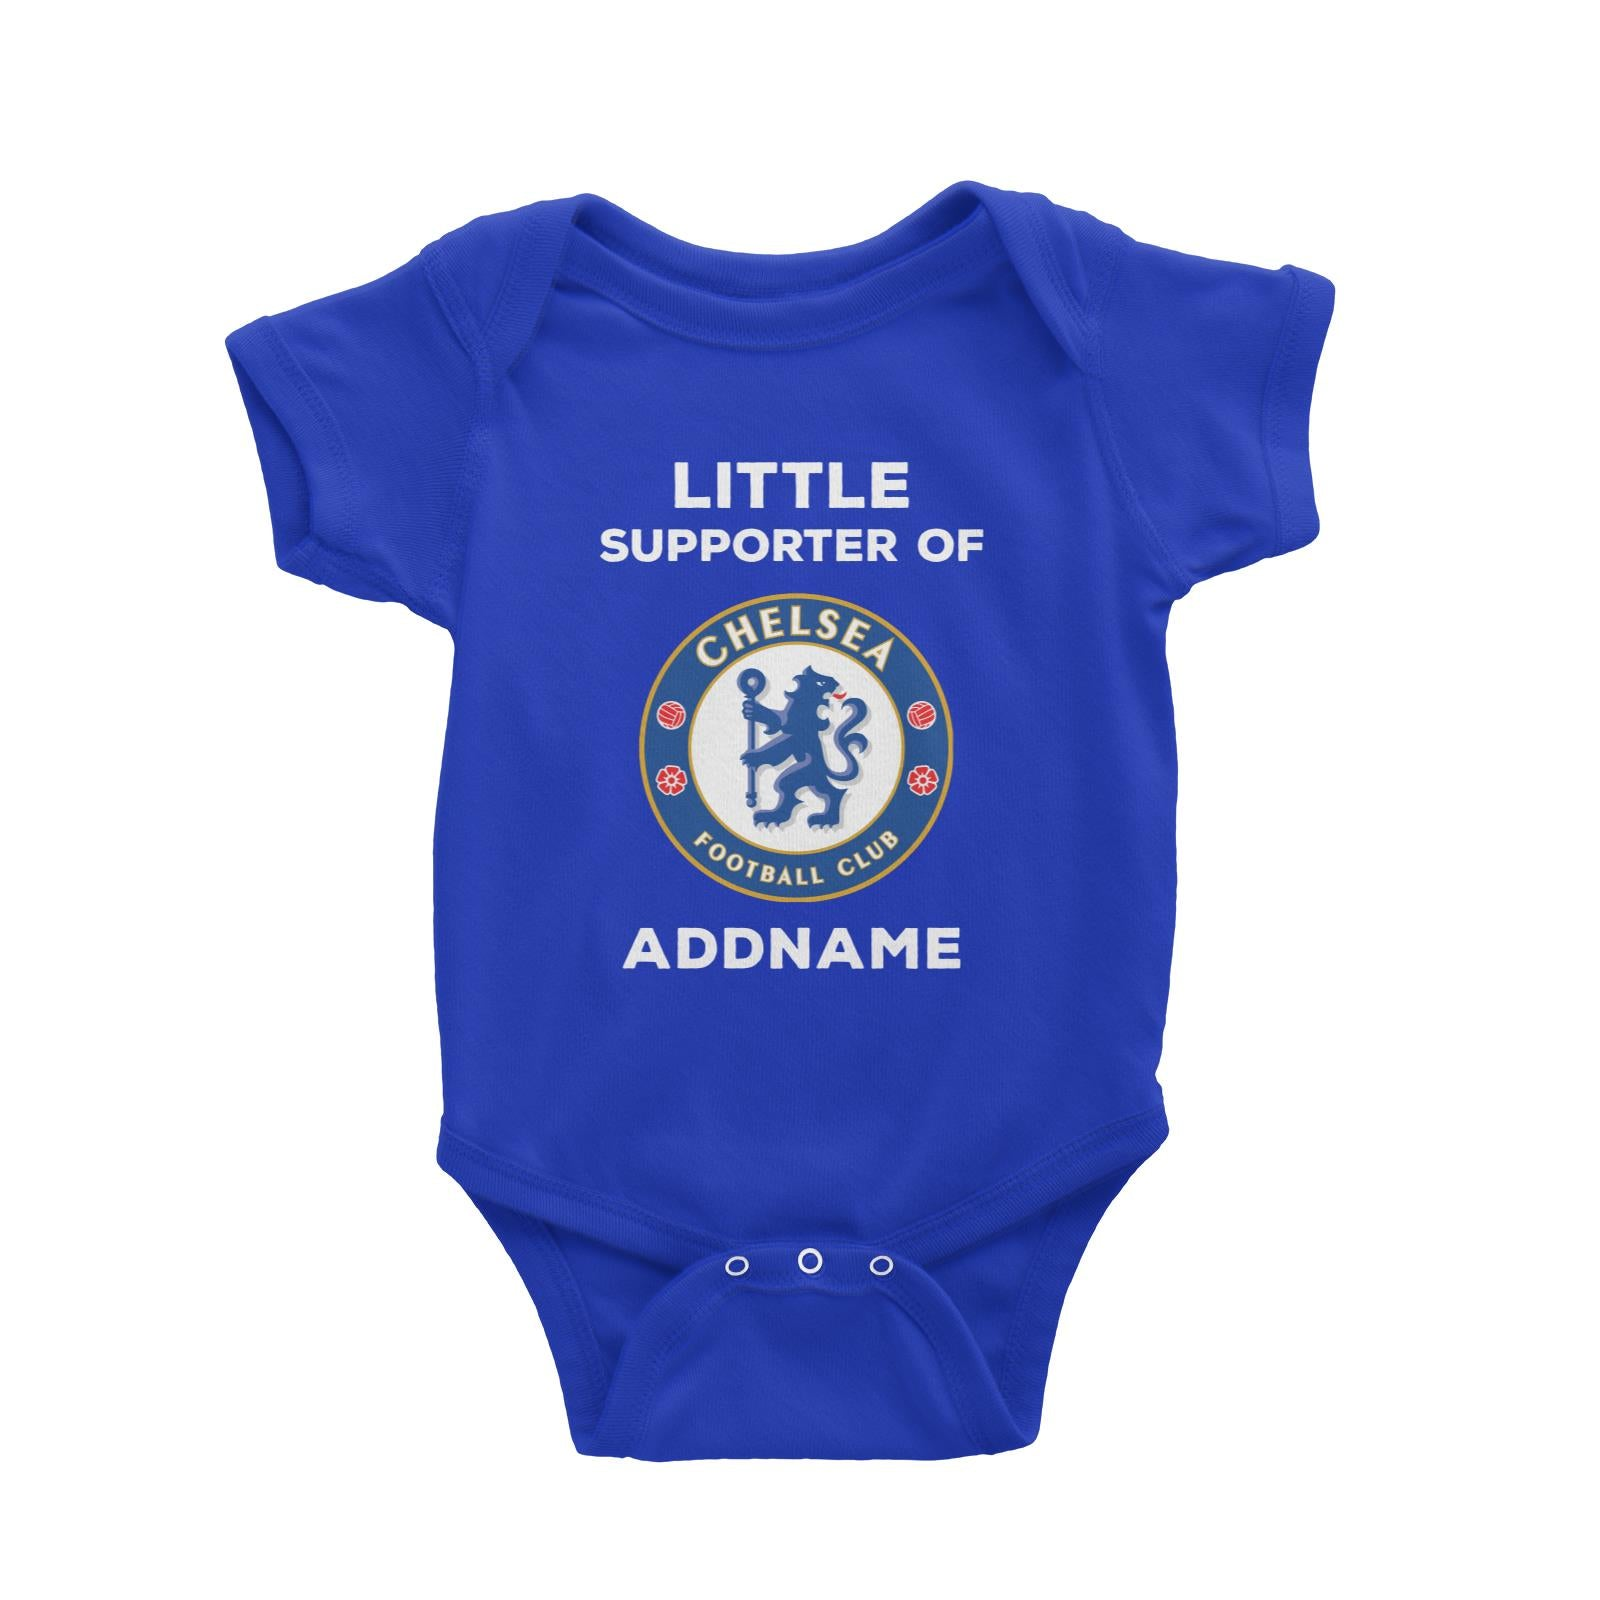 Chelsea FC Little Supporter Personalizable with Name Baby Romper